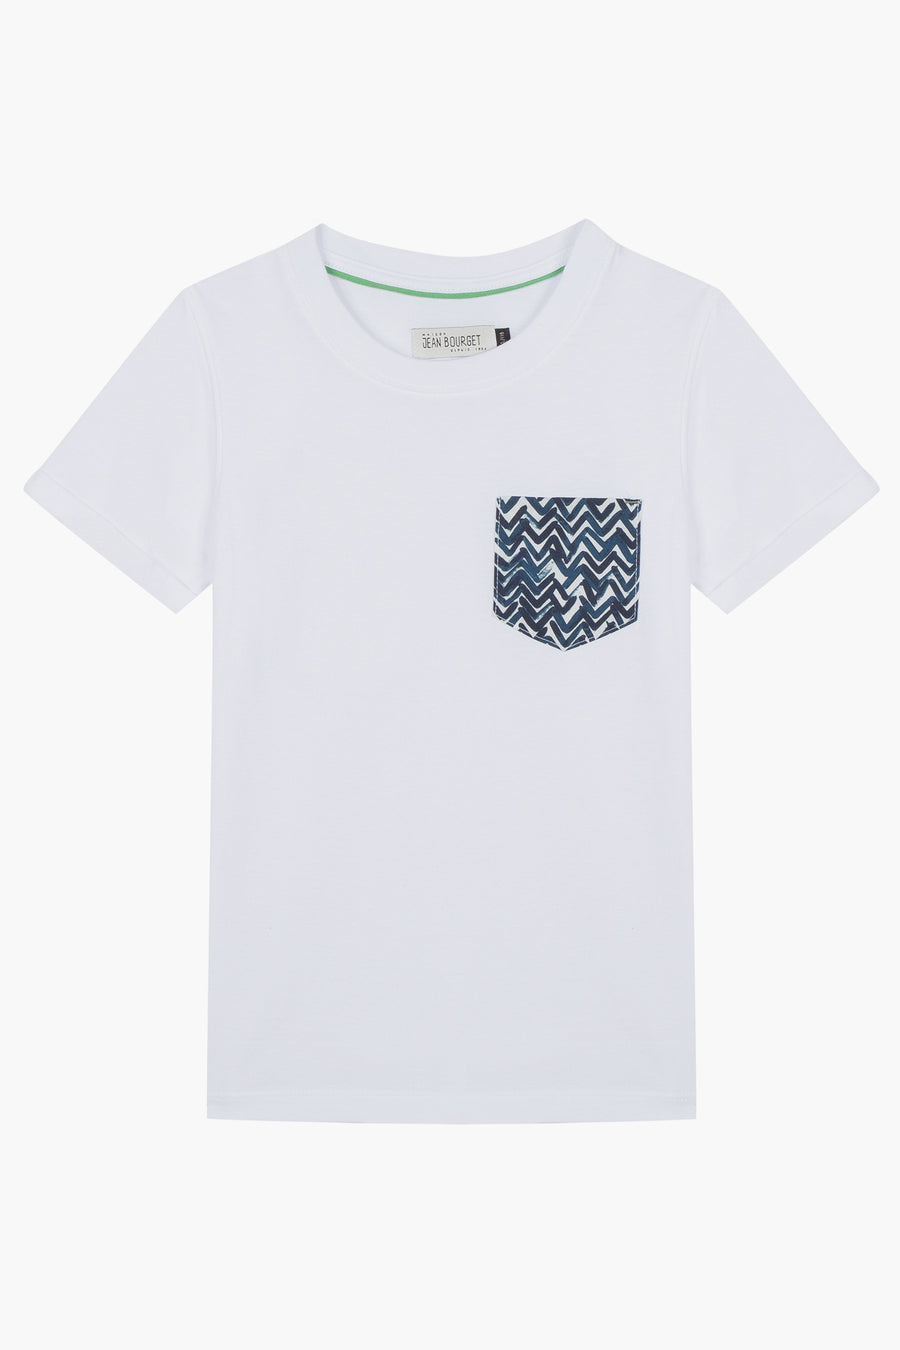 Jean Bourget Pocket Tee